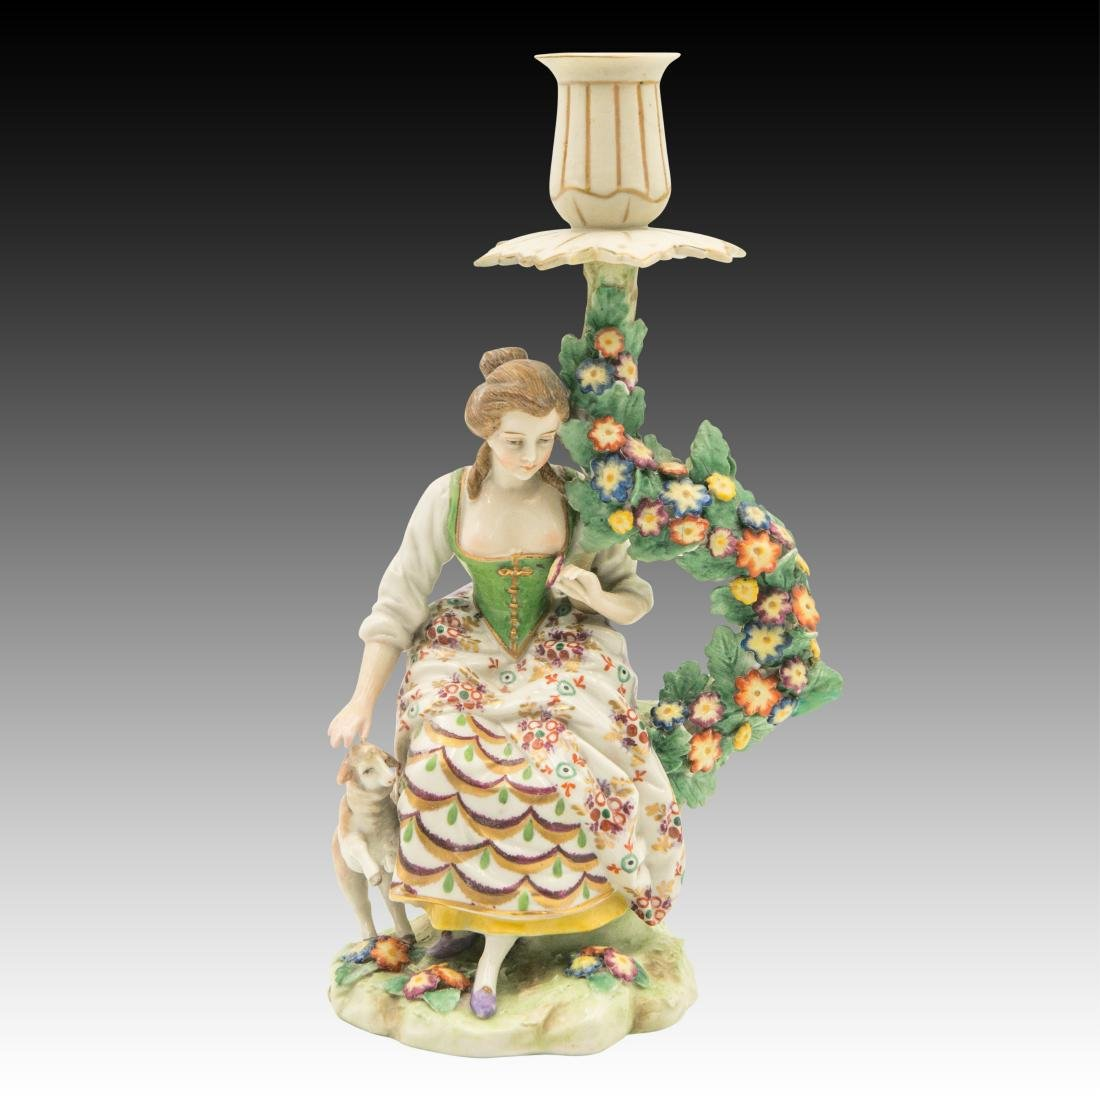 Young Maiden with a Sheep Candlestick